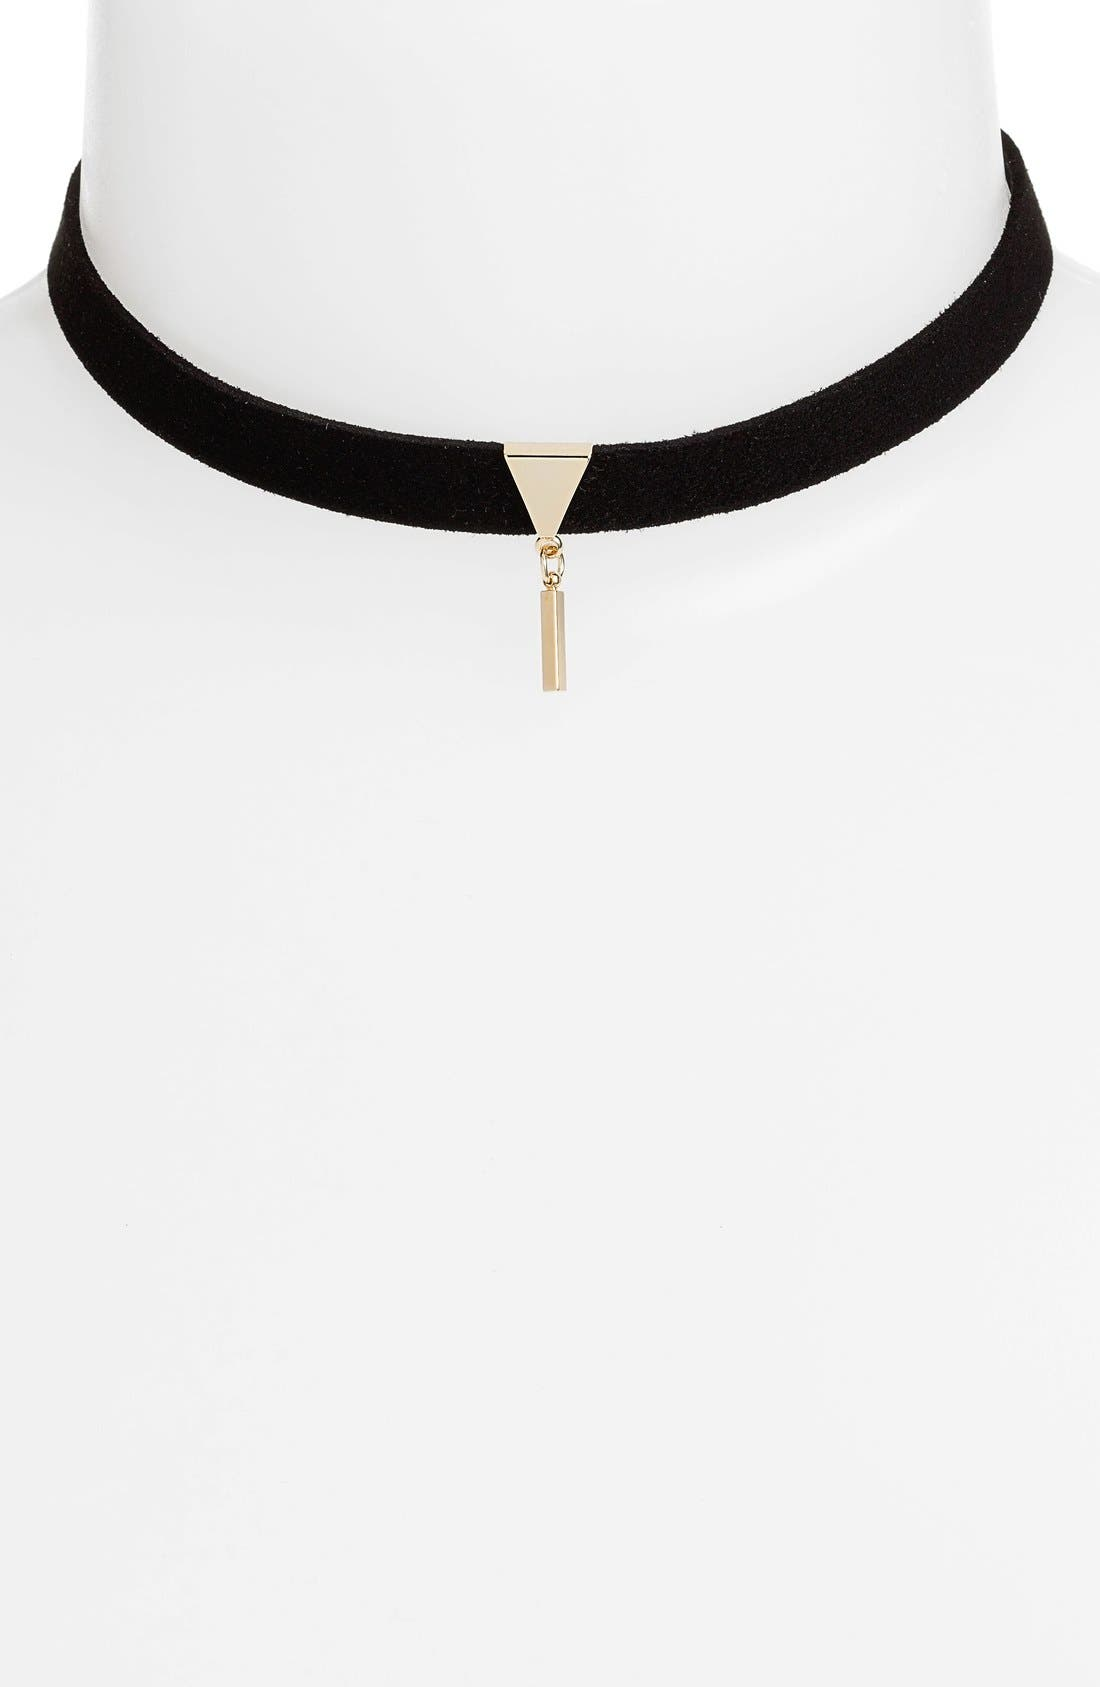 JULES SMITH 'Asa' Choker Necklace